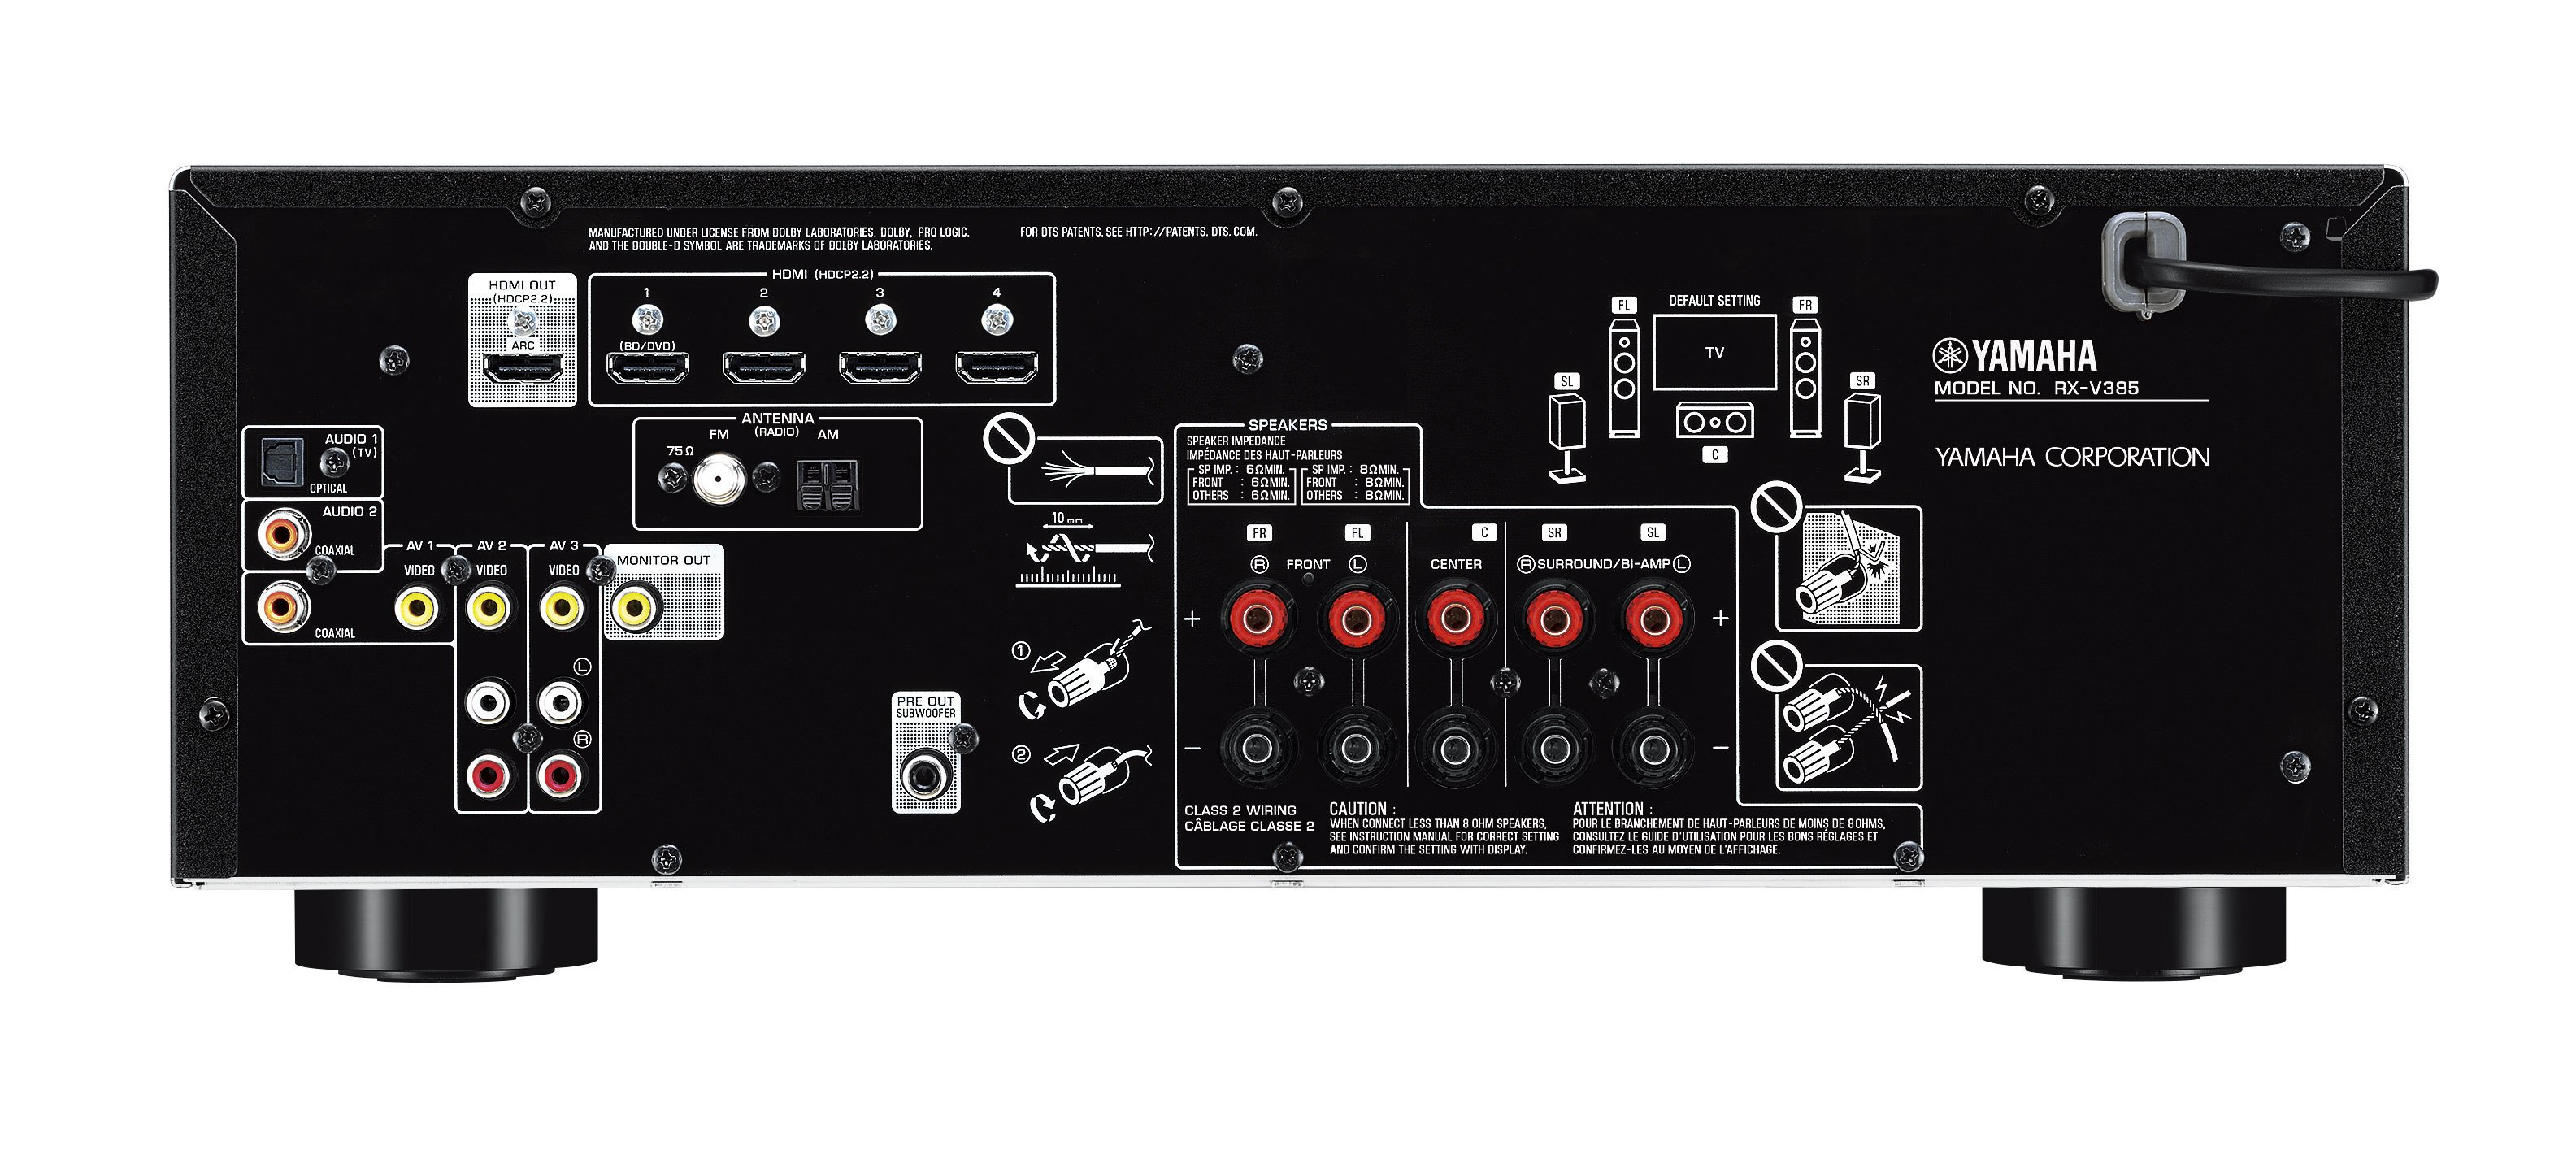 RX-V385 - Support - AV Receivers - Audio & Visual - Products